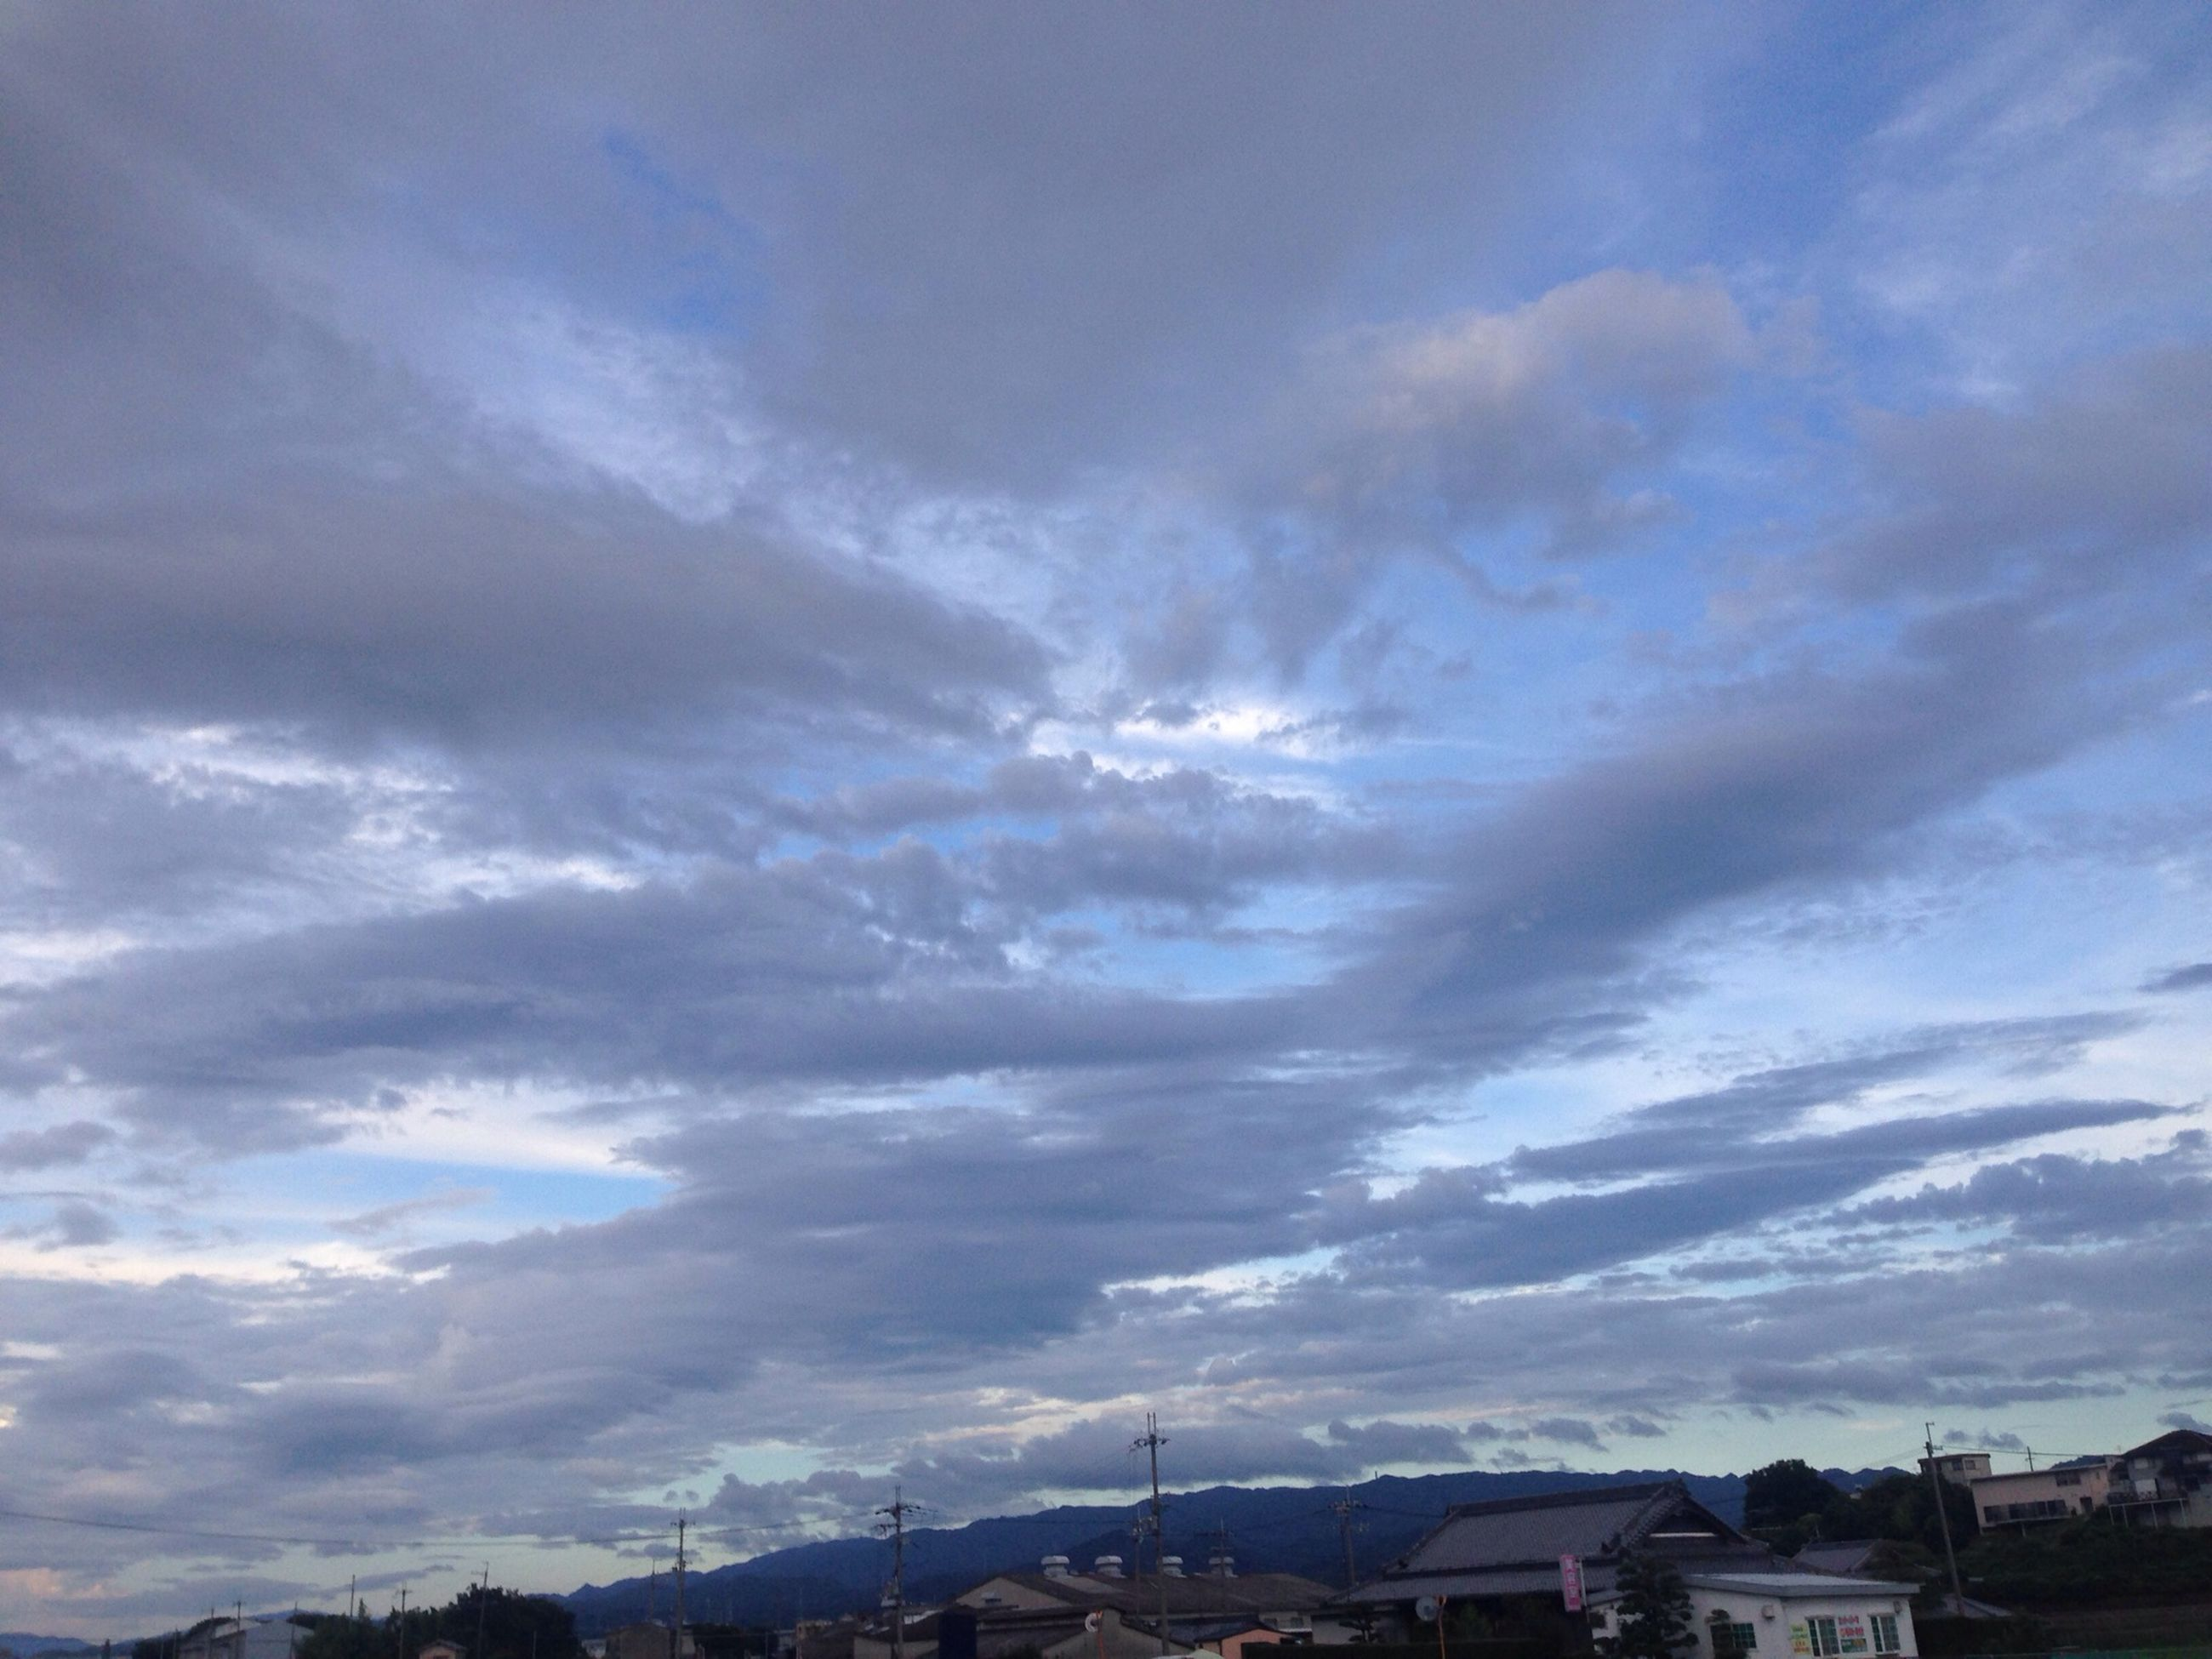 sky, cloud - sky, building exterior, built structure, architecture, cloudy, scenics, mountain, beauty in nature, cloud, nature, house, weather, tranquil scene, tranquility, landscape, town, outdoors, city, blue